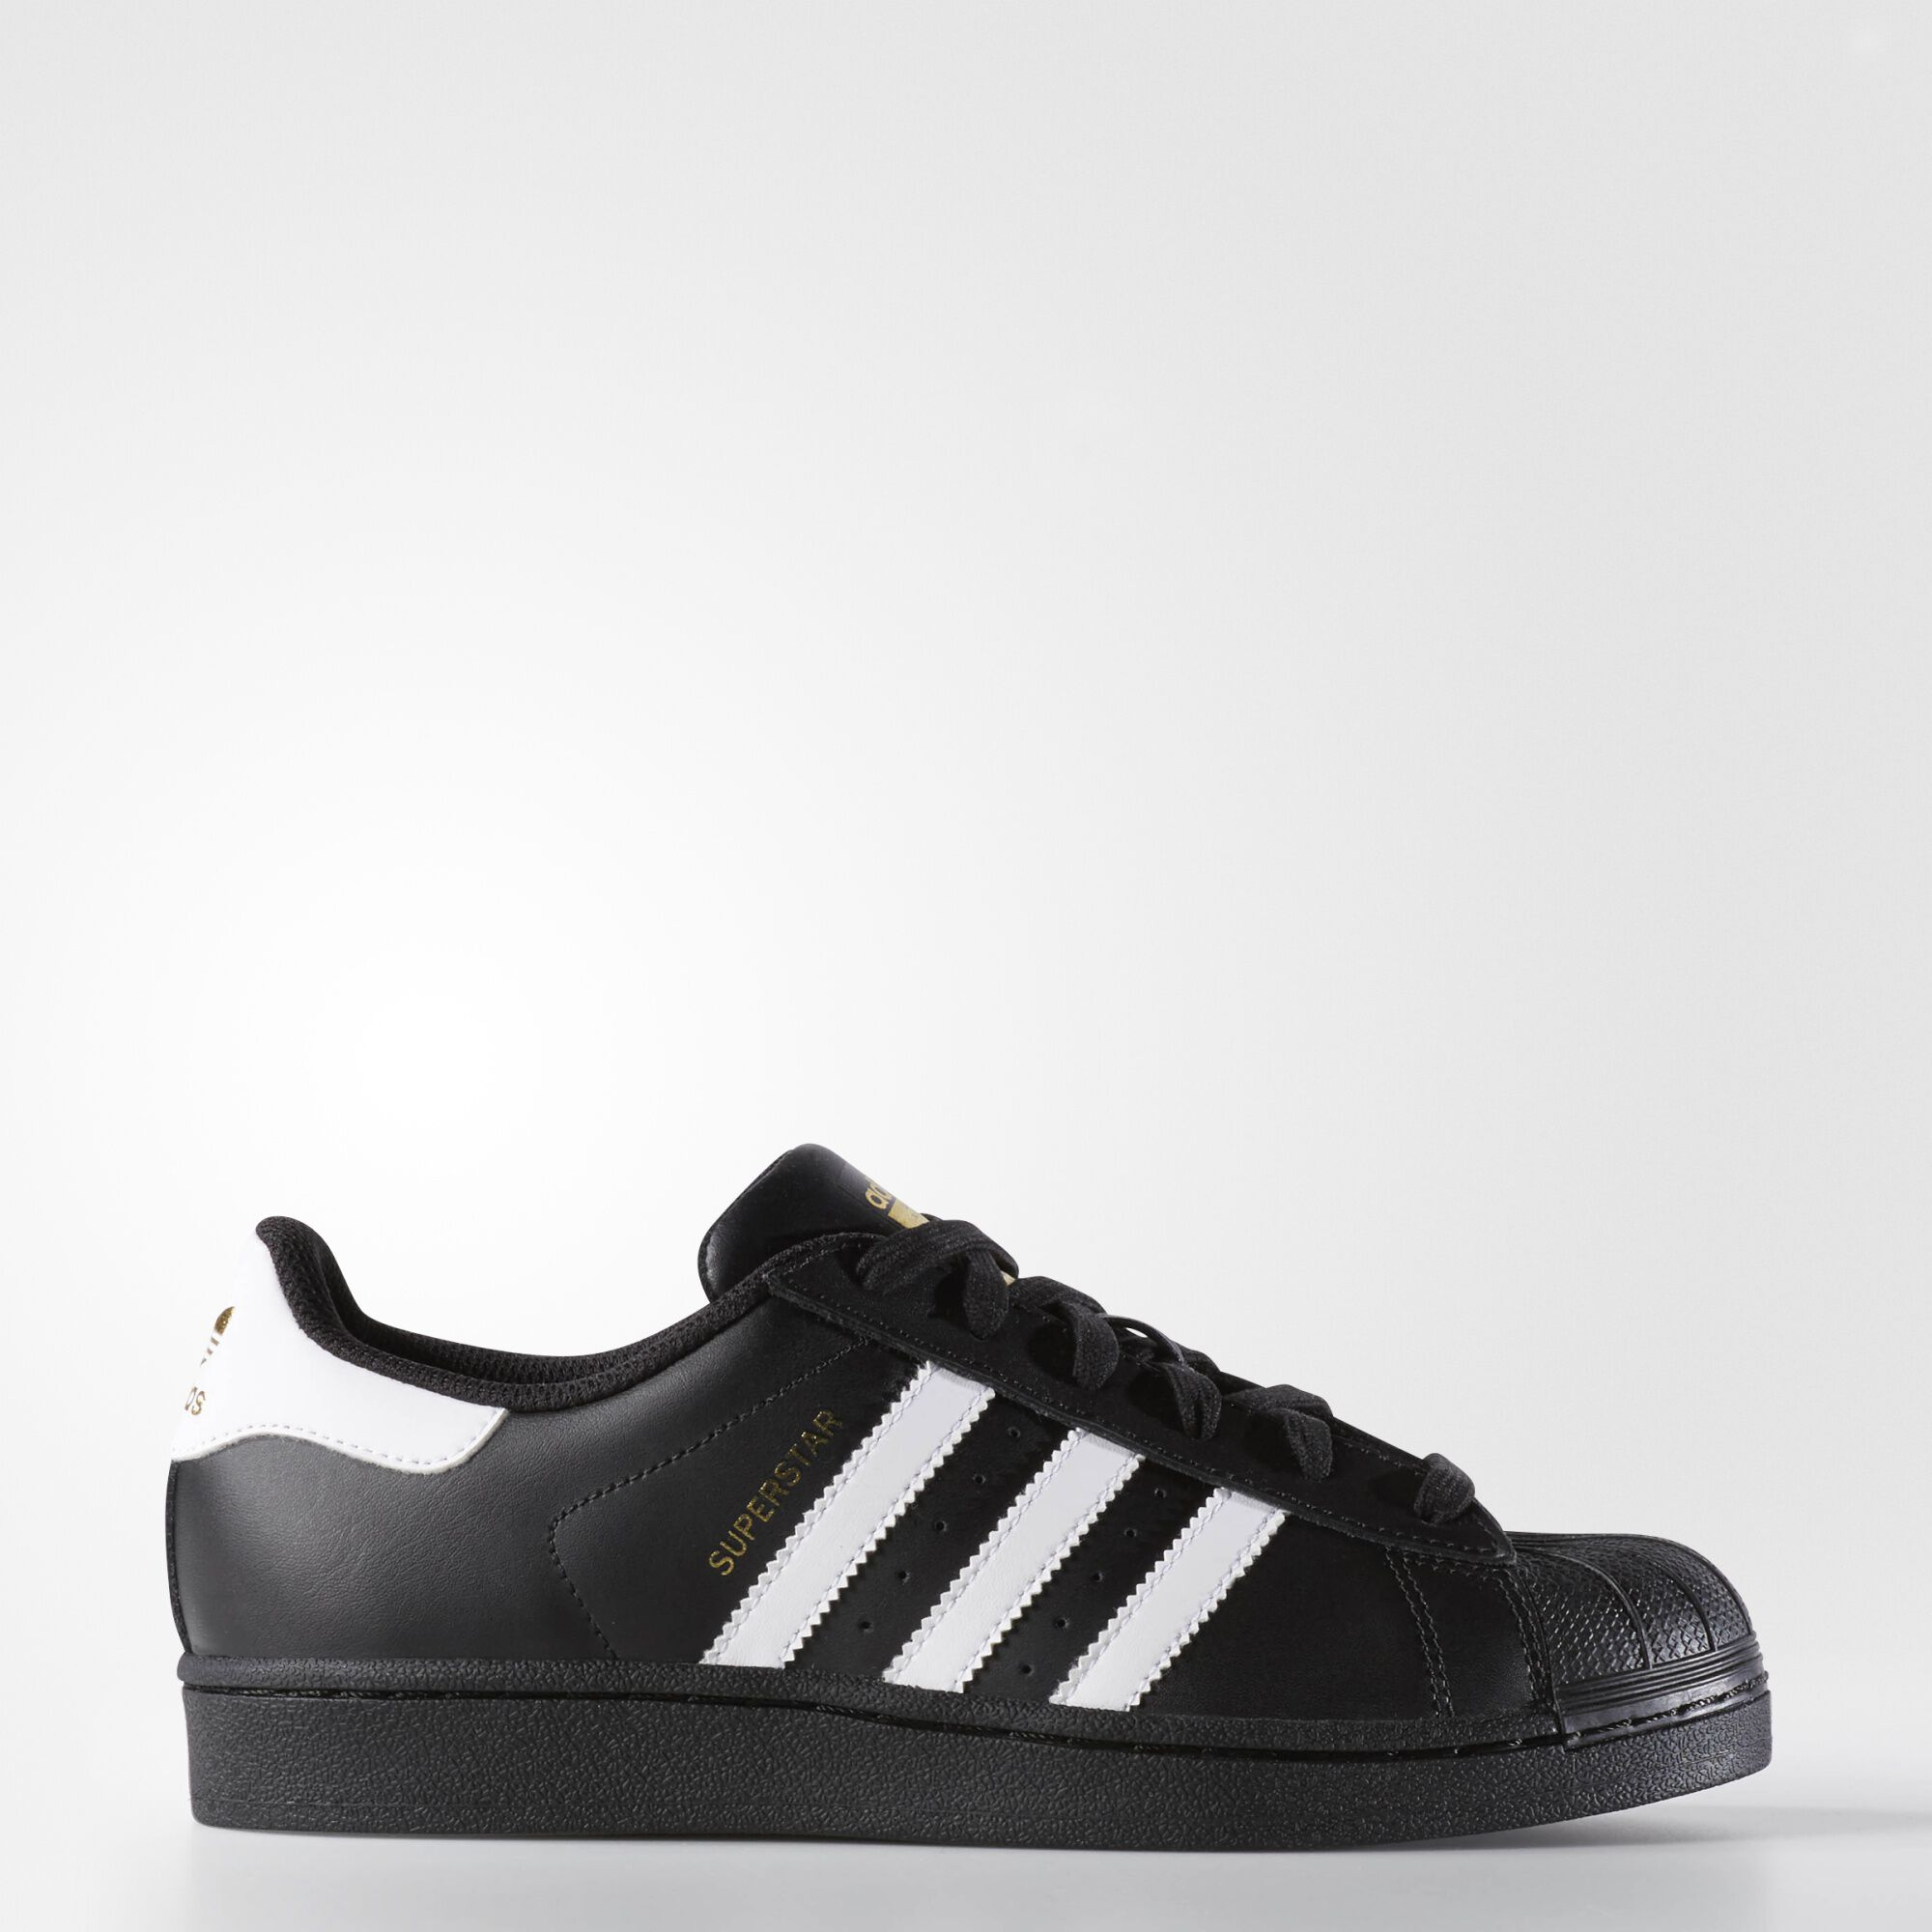 Buy womens adidas superstar shoes   OFF57% Discounted 980c60e72